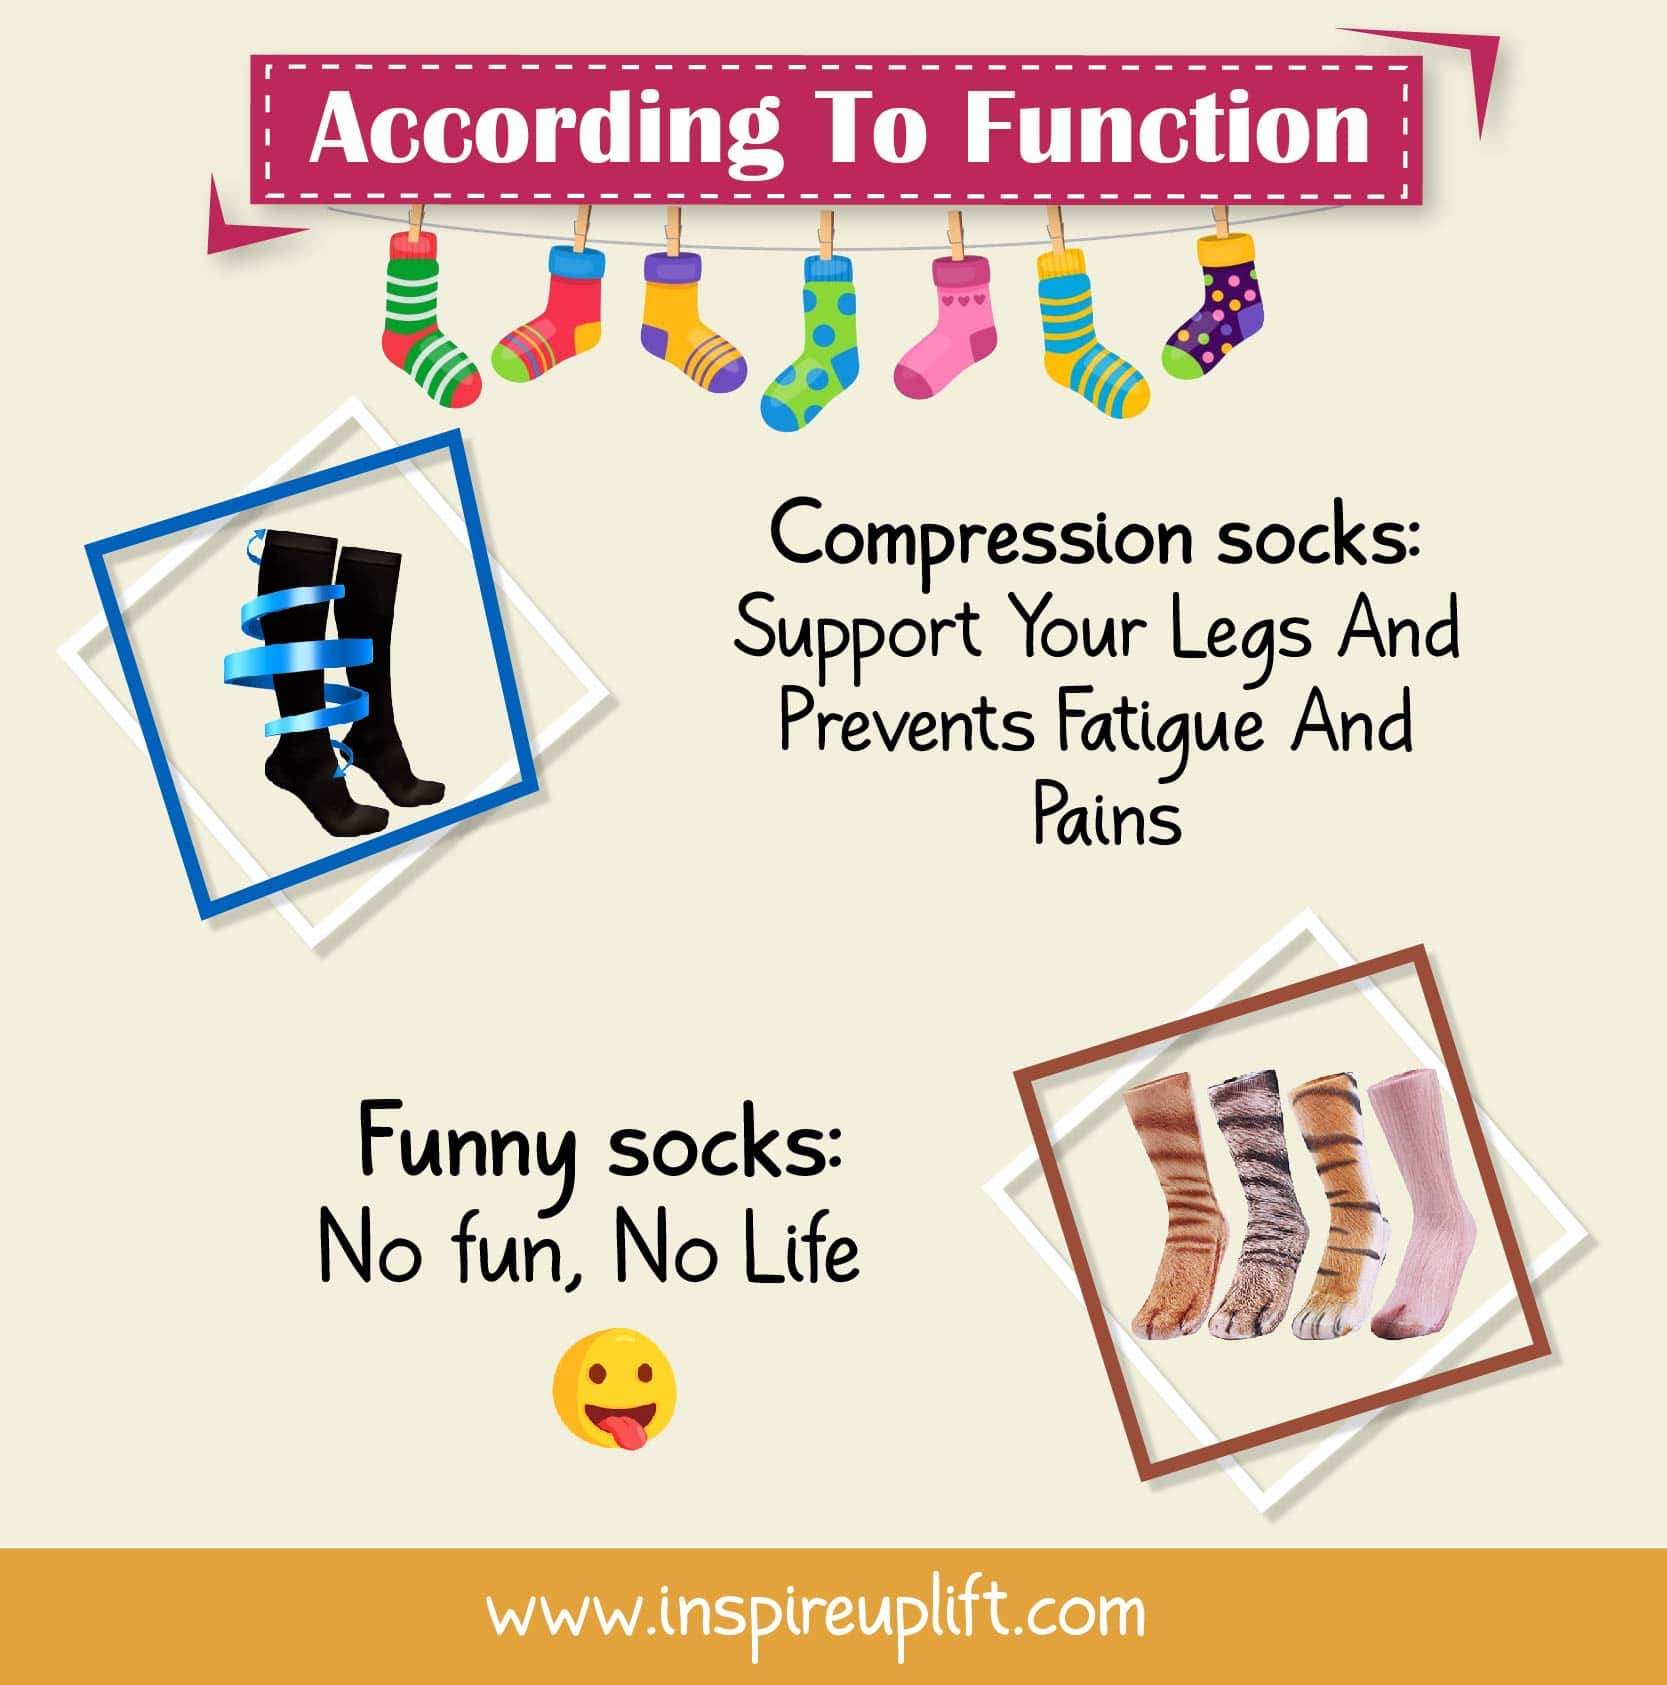 SOCK TYPES ACCORDING TO FUNCTION